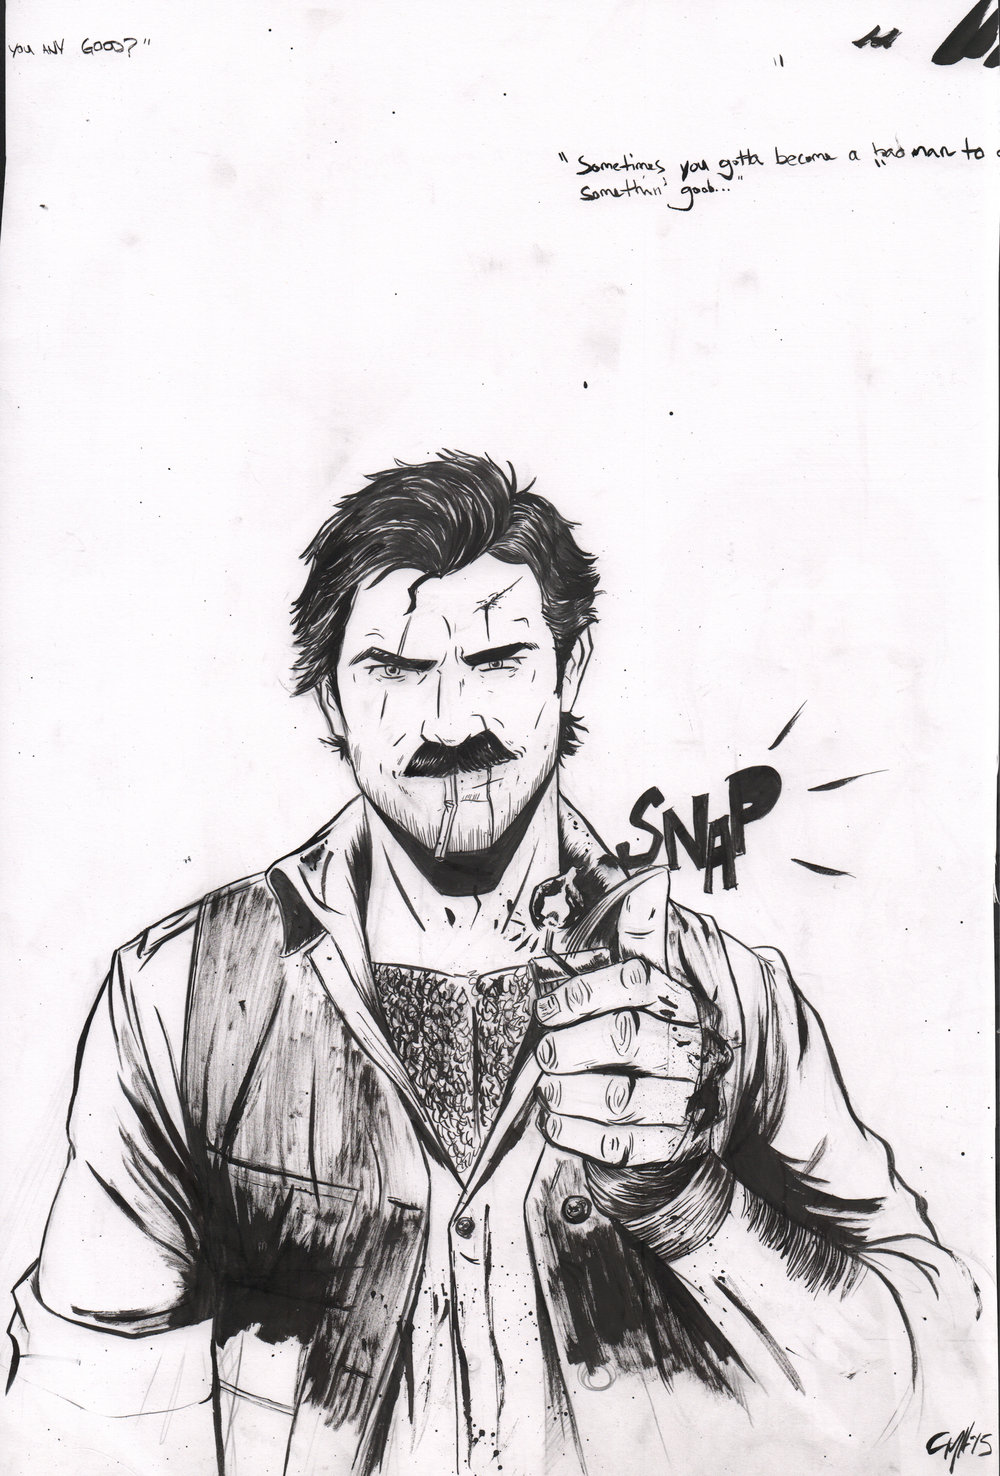 CARVER: A Paris Story Issue 3 Drawing